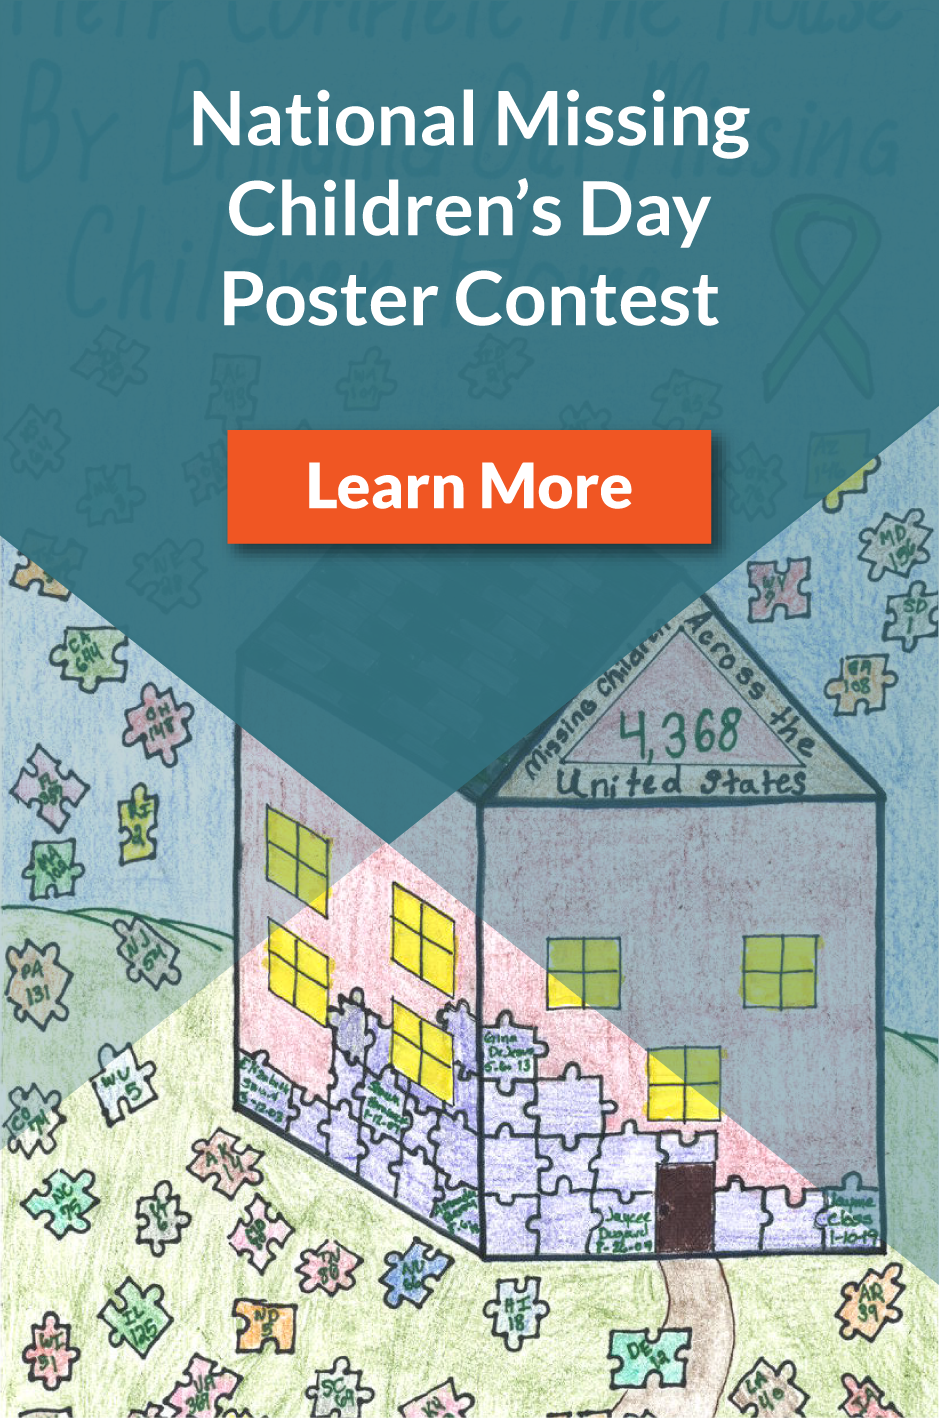 National Missing Children's Day Poster Contest